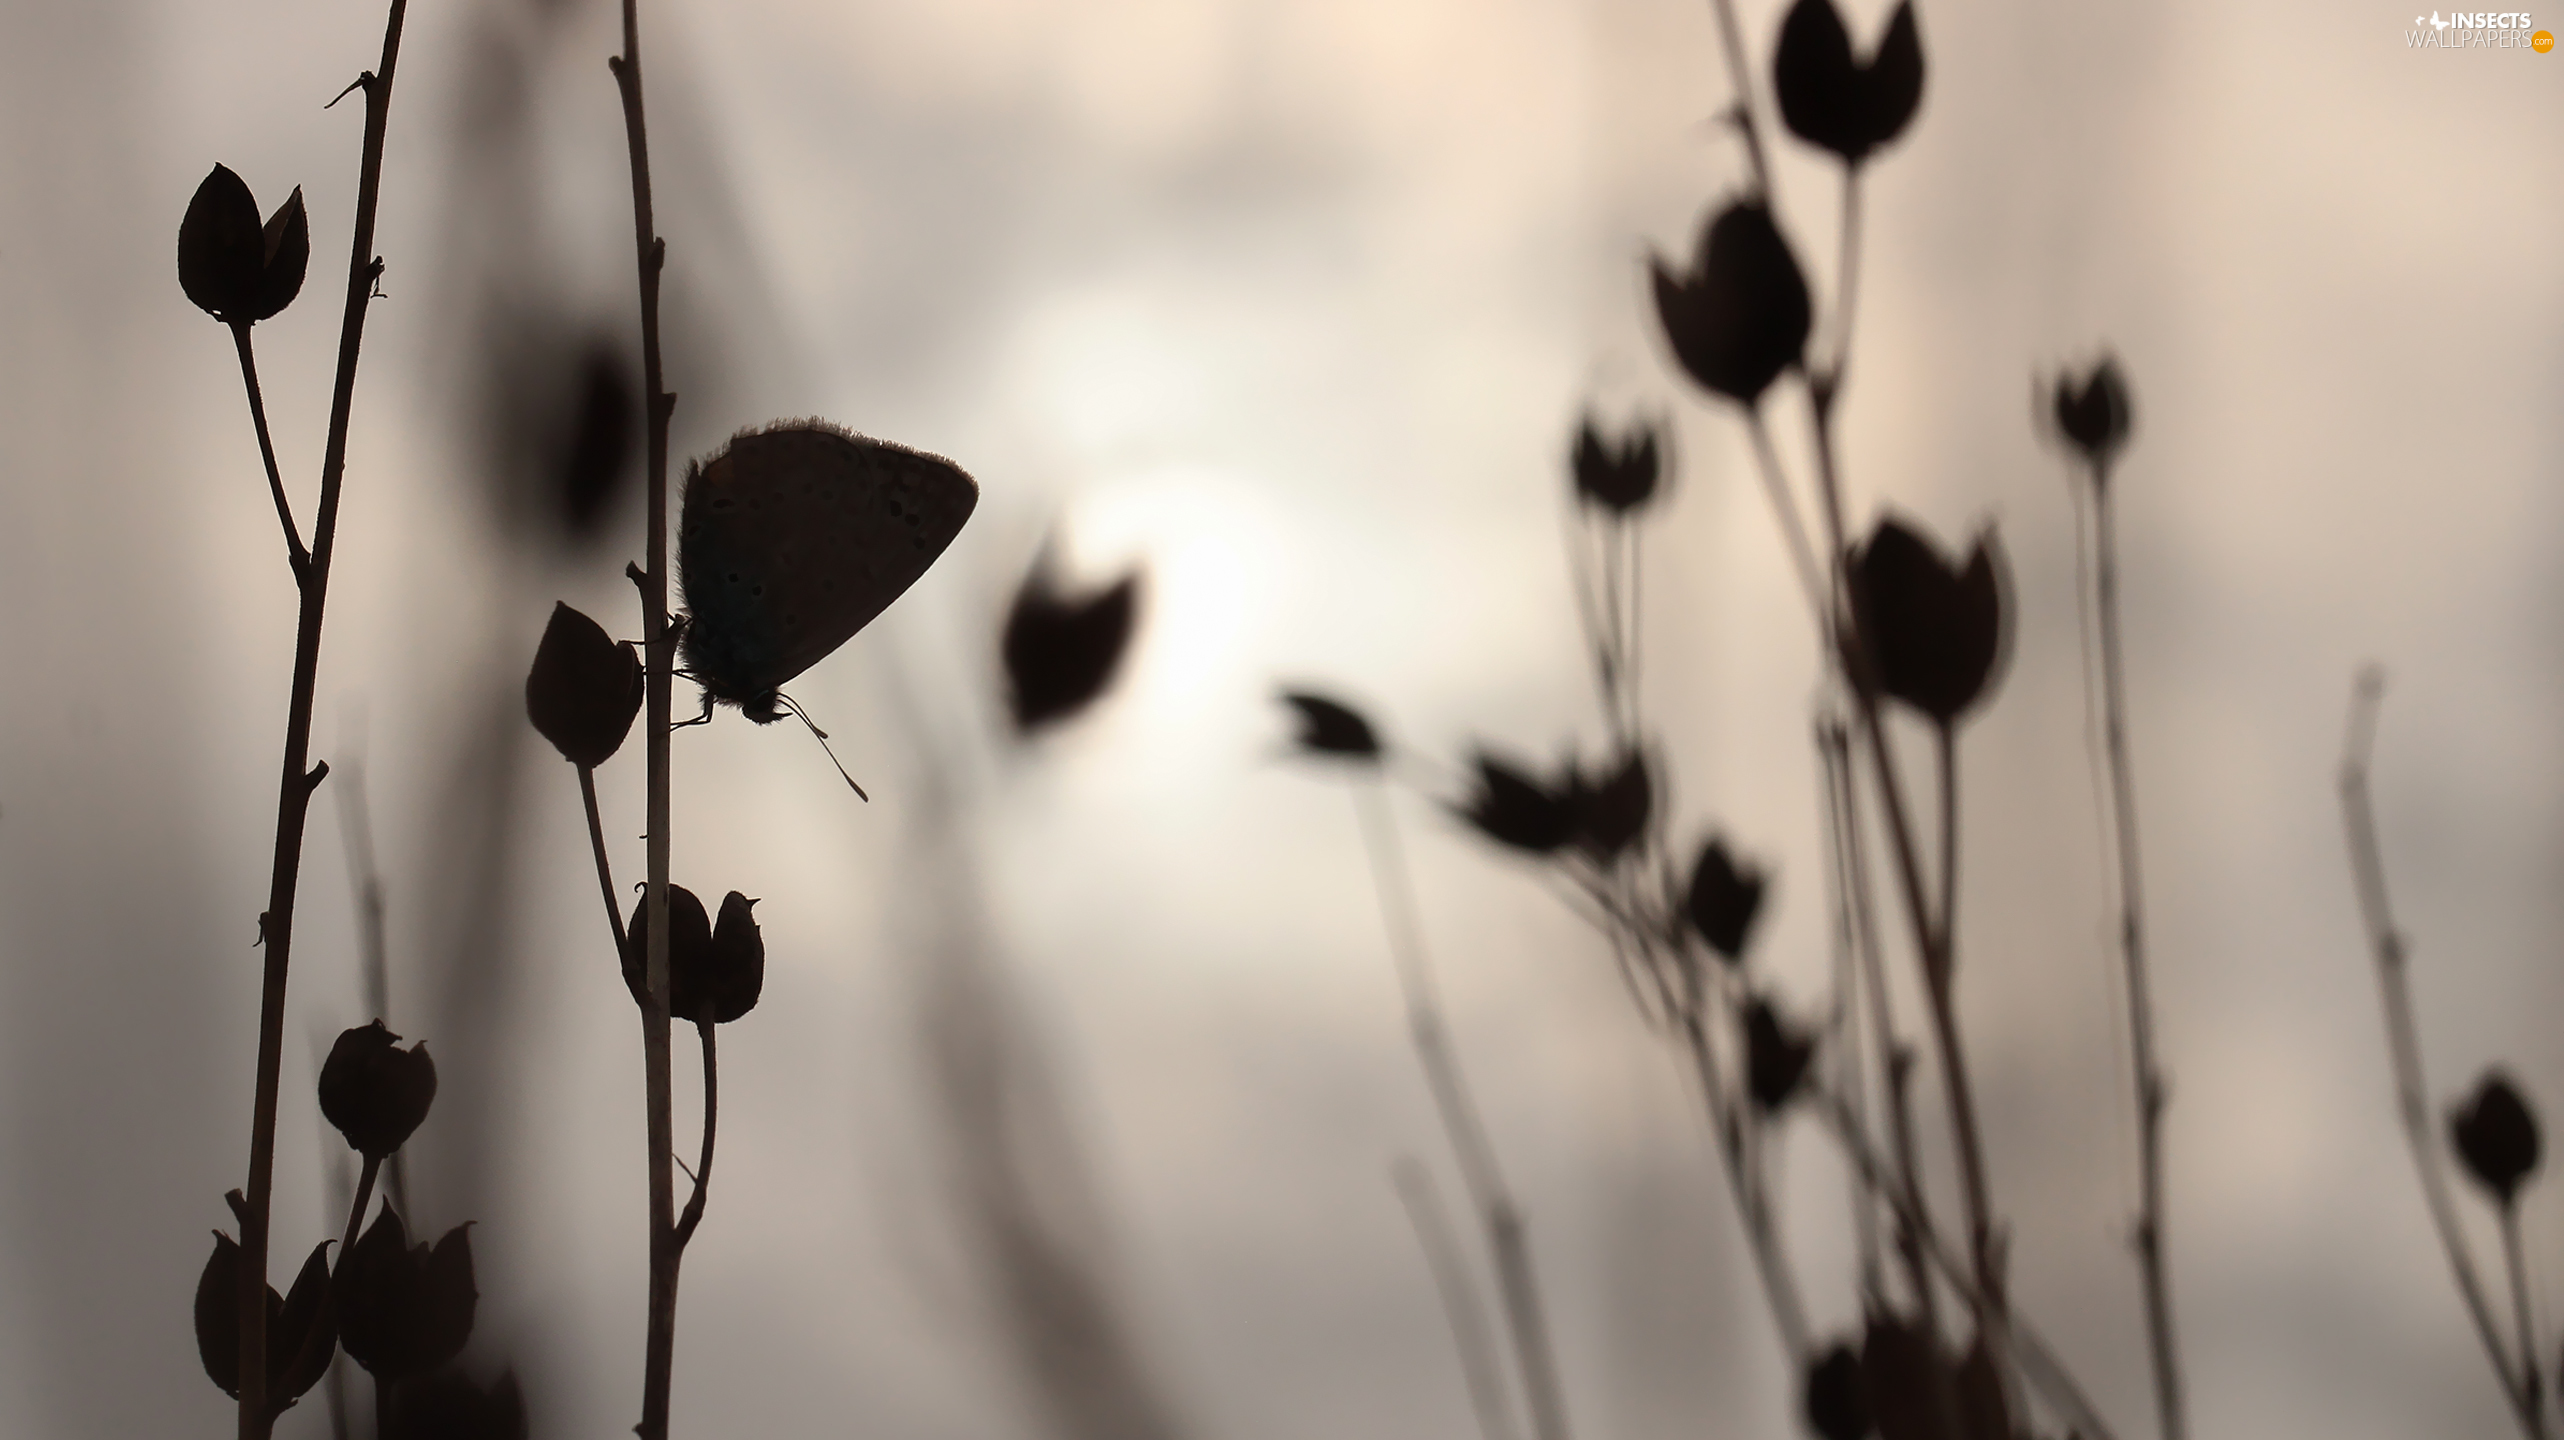 evening, butterfly, Plants